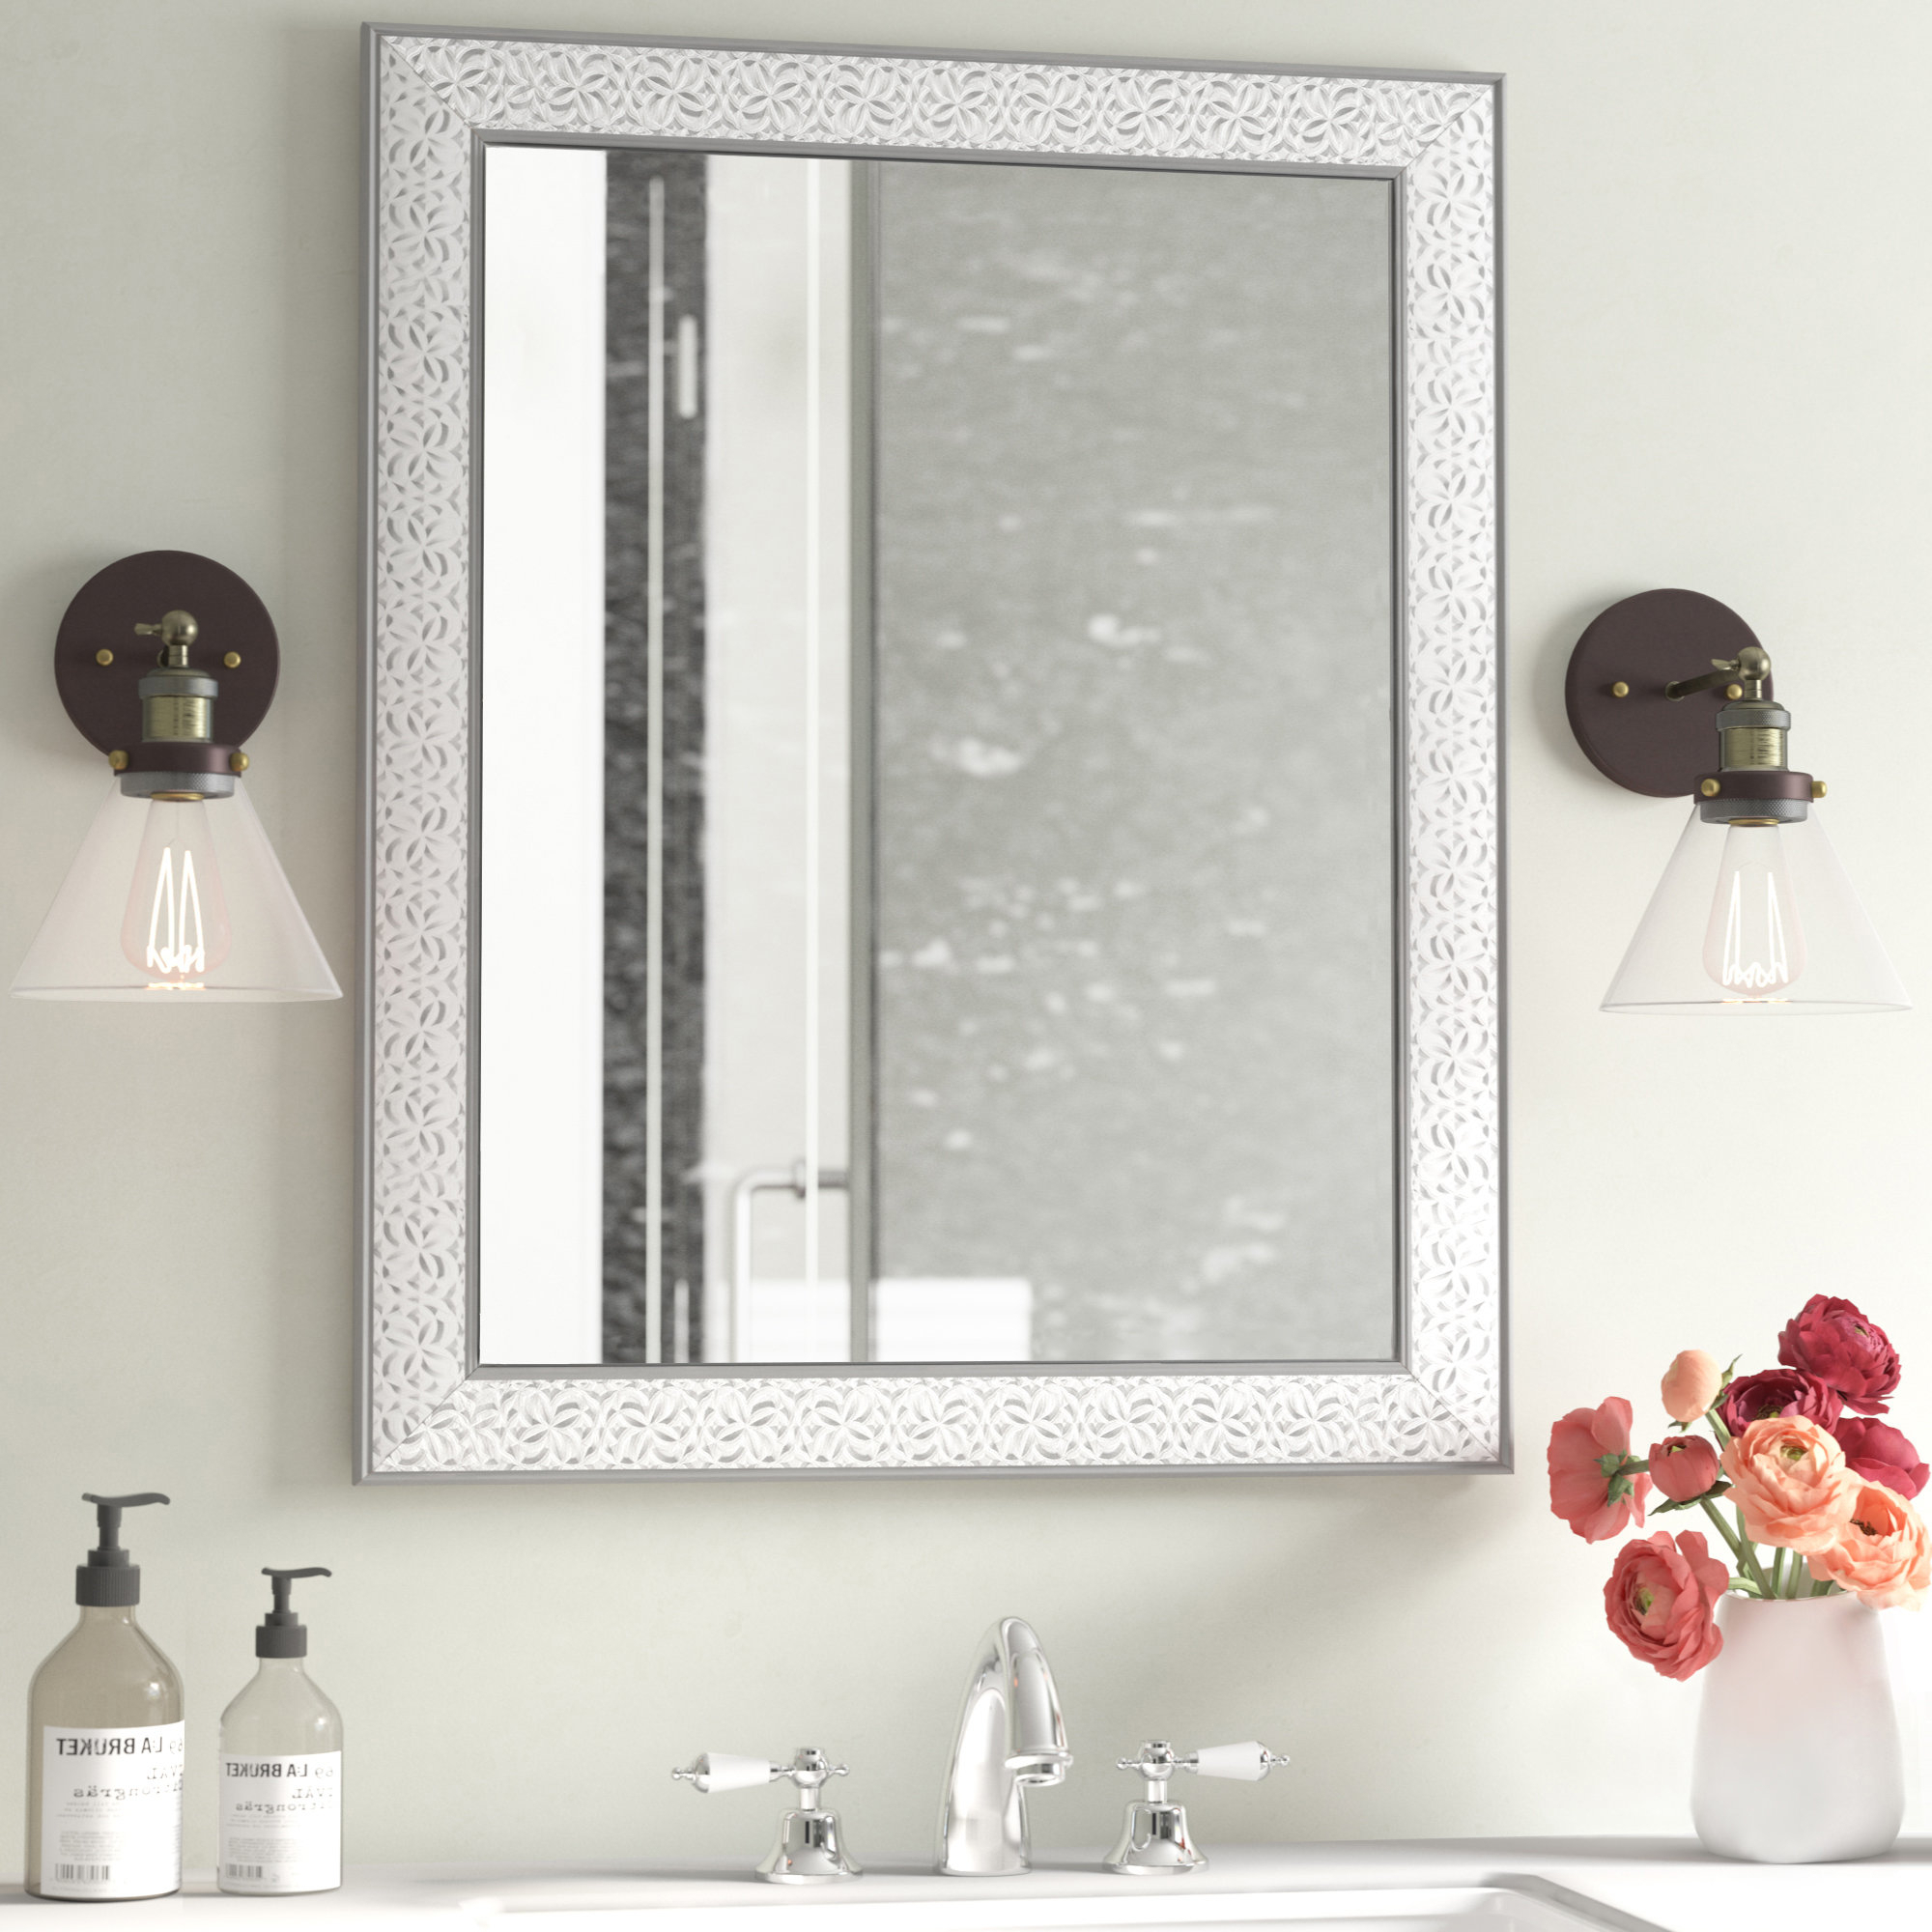 Modern & Contemporary Beveled Wall Mirrors Pertaining To Best And Newest Encanto Modern & Contemporary Beveled Bathroom/vanity Mirror (Gallery 5 of 20)